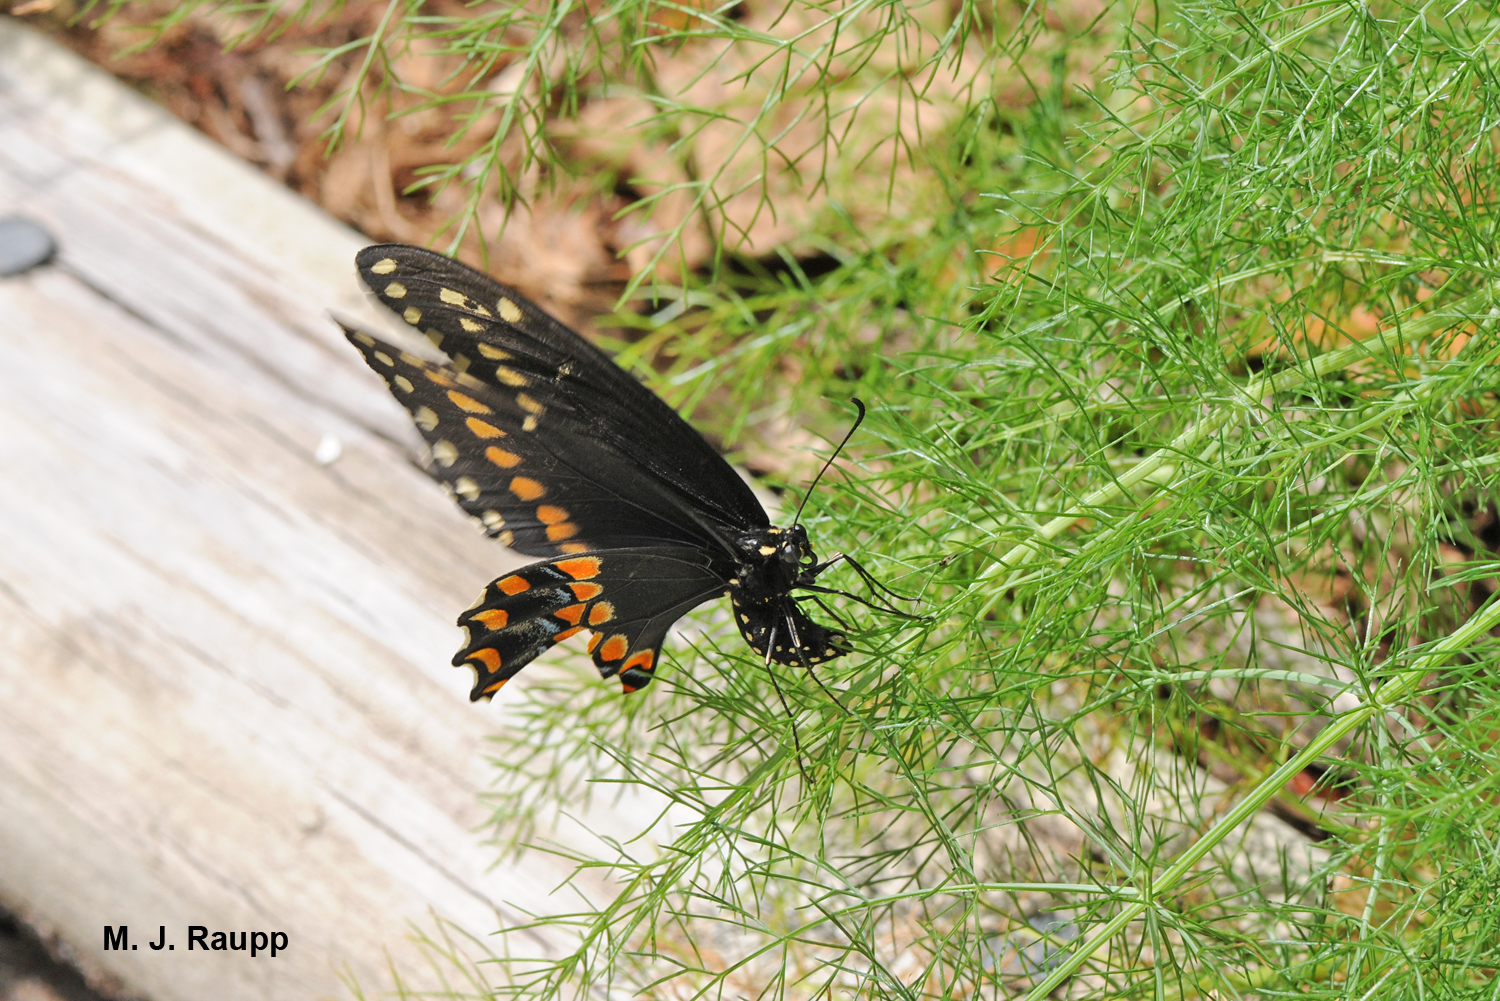 "A female black swallowtail butterfly lays her eggs on dill.          Normal   0           false   false   false     EN-US   X-NONE   X-NONE                                  MicrosoftInternetExplorer4                                                                                                                                                                                                                                                                                                                                            /* Style Definitions */  table.MsoNormalTable 	{mso-style-name:""Table Normal""; 	mso-tstyle-rowband-size:0; 	mso-tstyle-colband-size:0; 	mso-style-noshow:yes; 	mso-style-priority:99; 	mso-style-parent:""""; 	mso-padding-alt:0in 5.4pt 0in 5.4pt; 	mso-para-margin:0in; 	mso-para-margin-bottom:.0001pt; 	mso-pagination:widow-orphan; 	font-size:10.0pt; 	font-family:""Times New Roman"",""serif"";}"